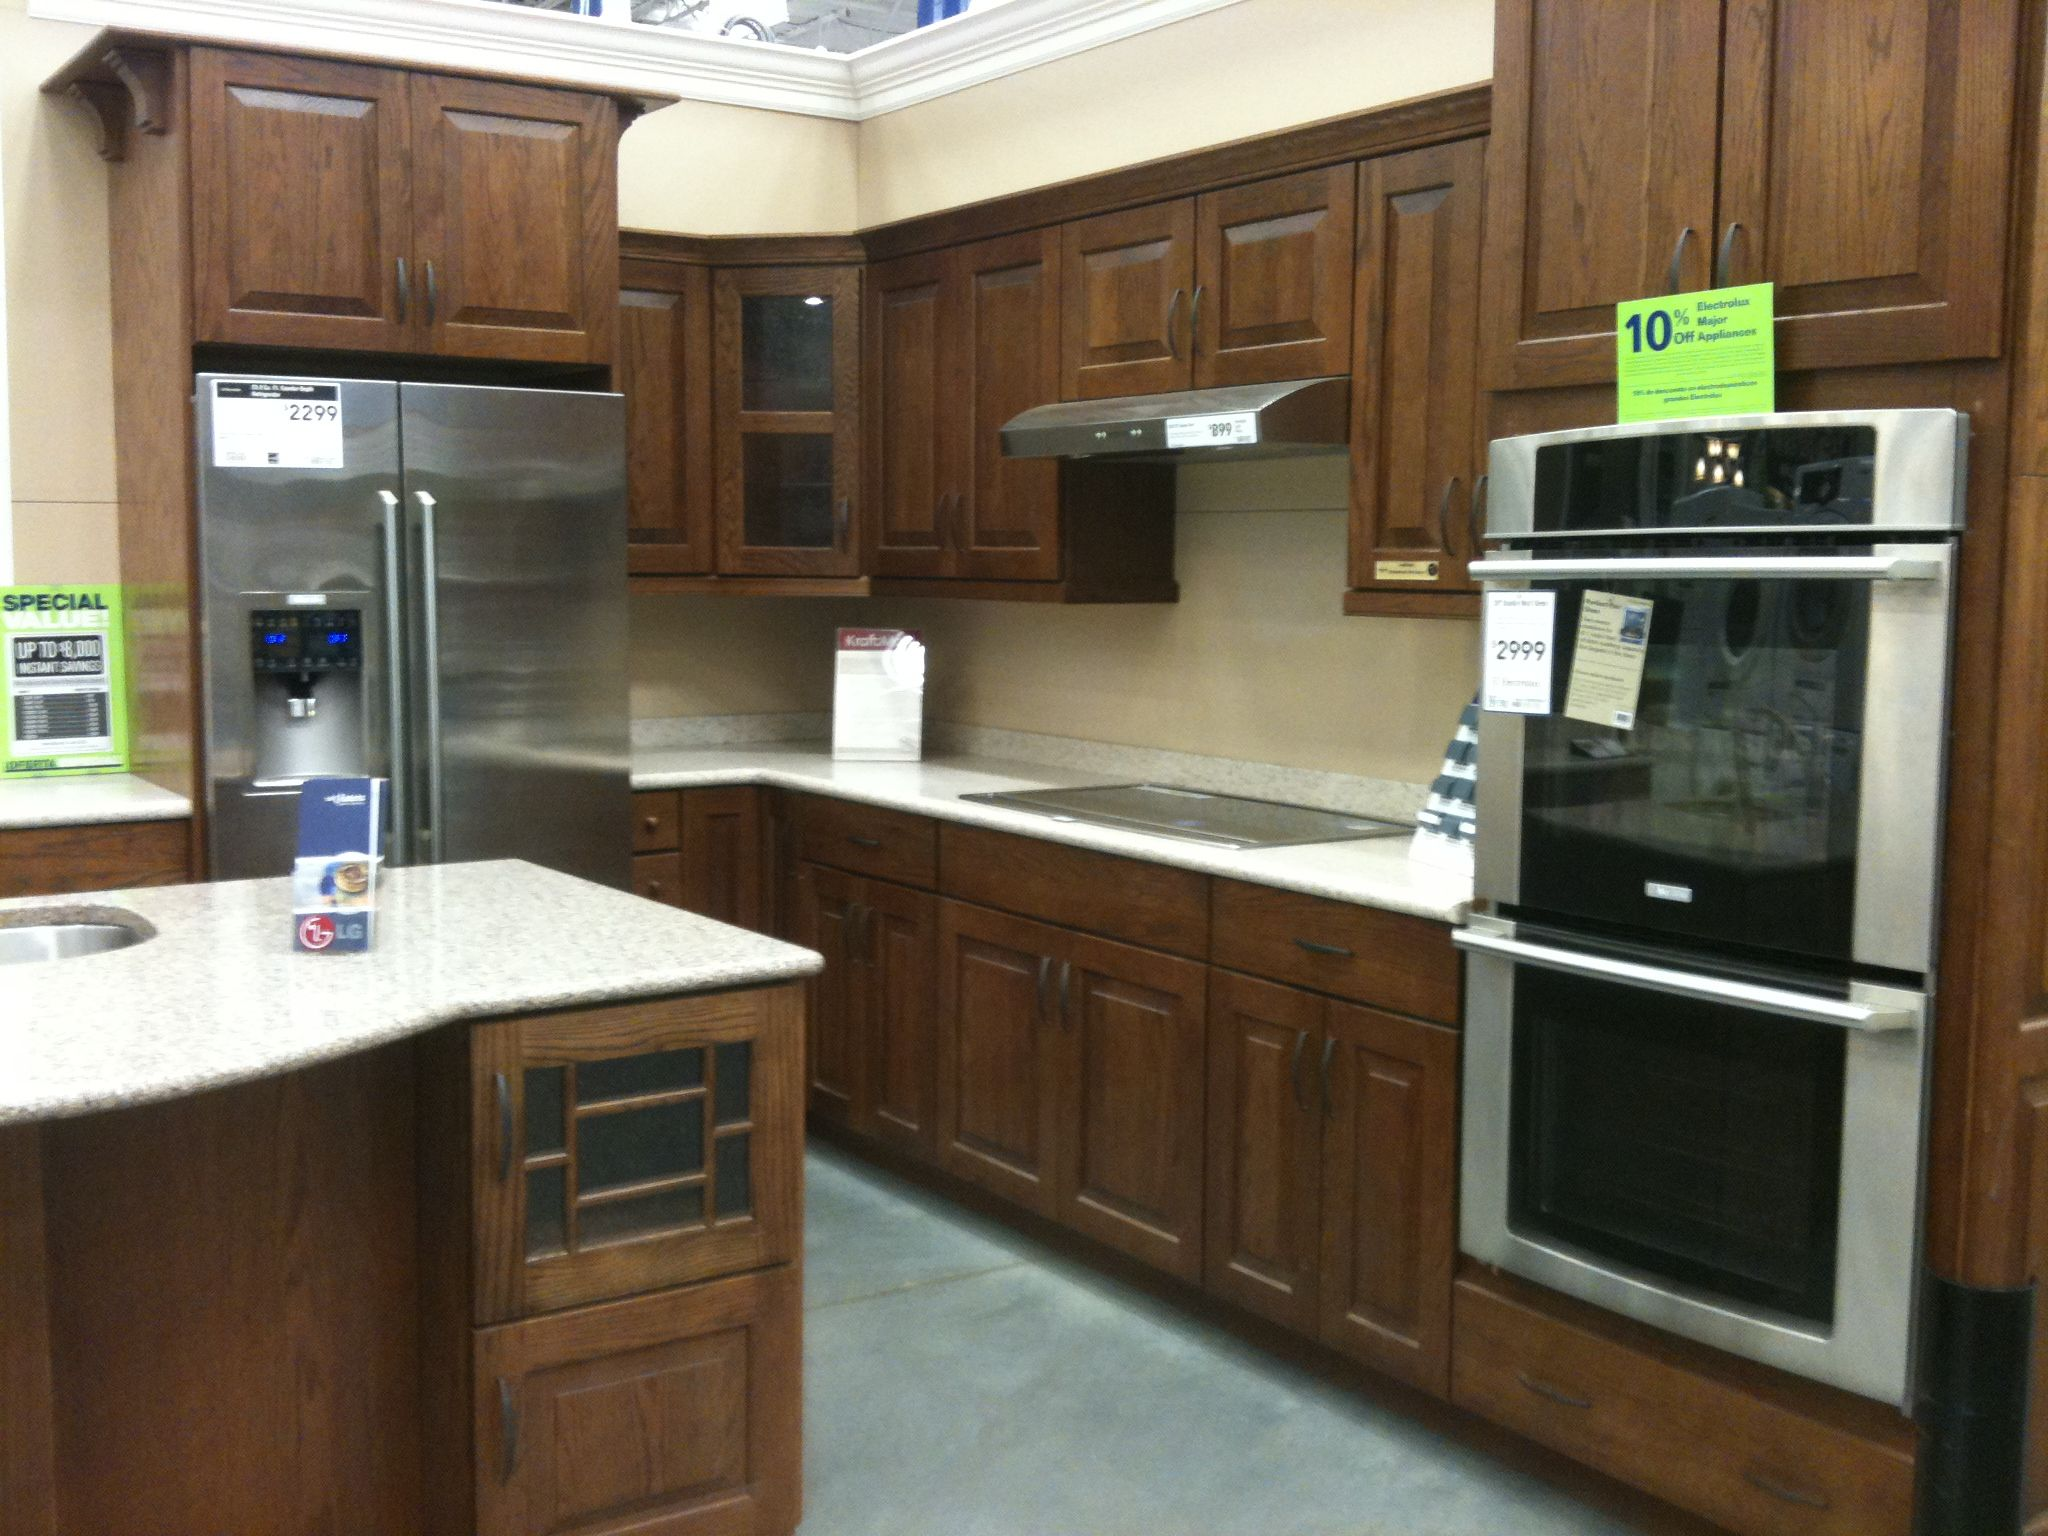 A Craftsman Style Kitchen I Saw At Lowes And Fell In Love With 2 Years Ago Craftsman Style Kitchen Kitchen Styling Kitchen